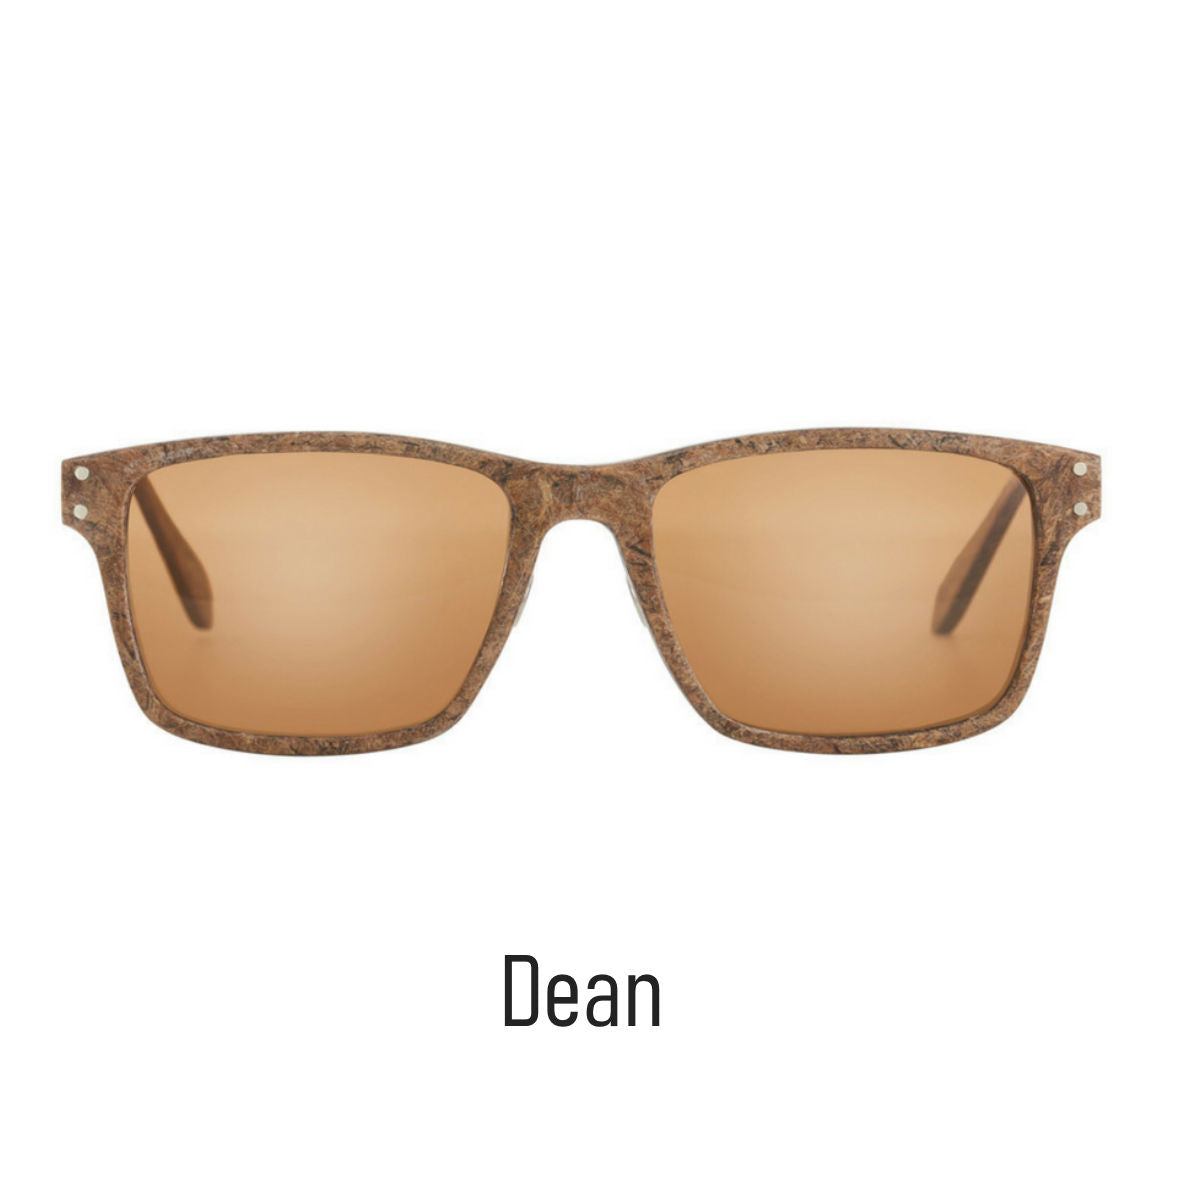 Hemp Eyewear Limited U.S. Release 1st Hemp Sunglasses - Dean